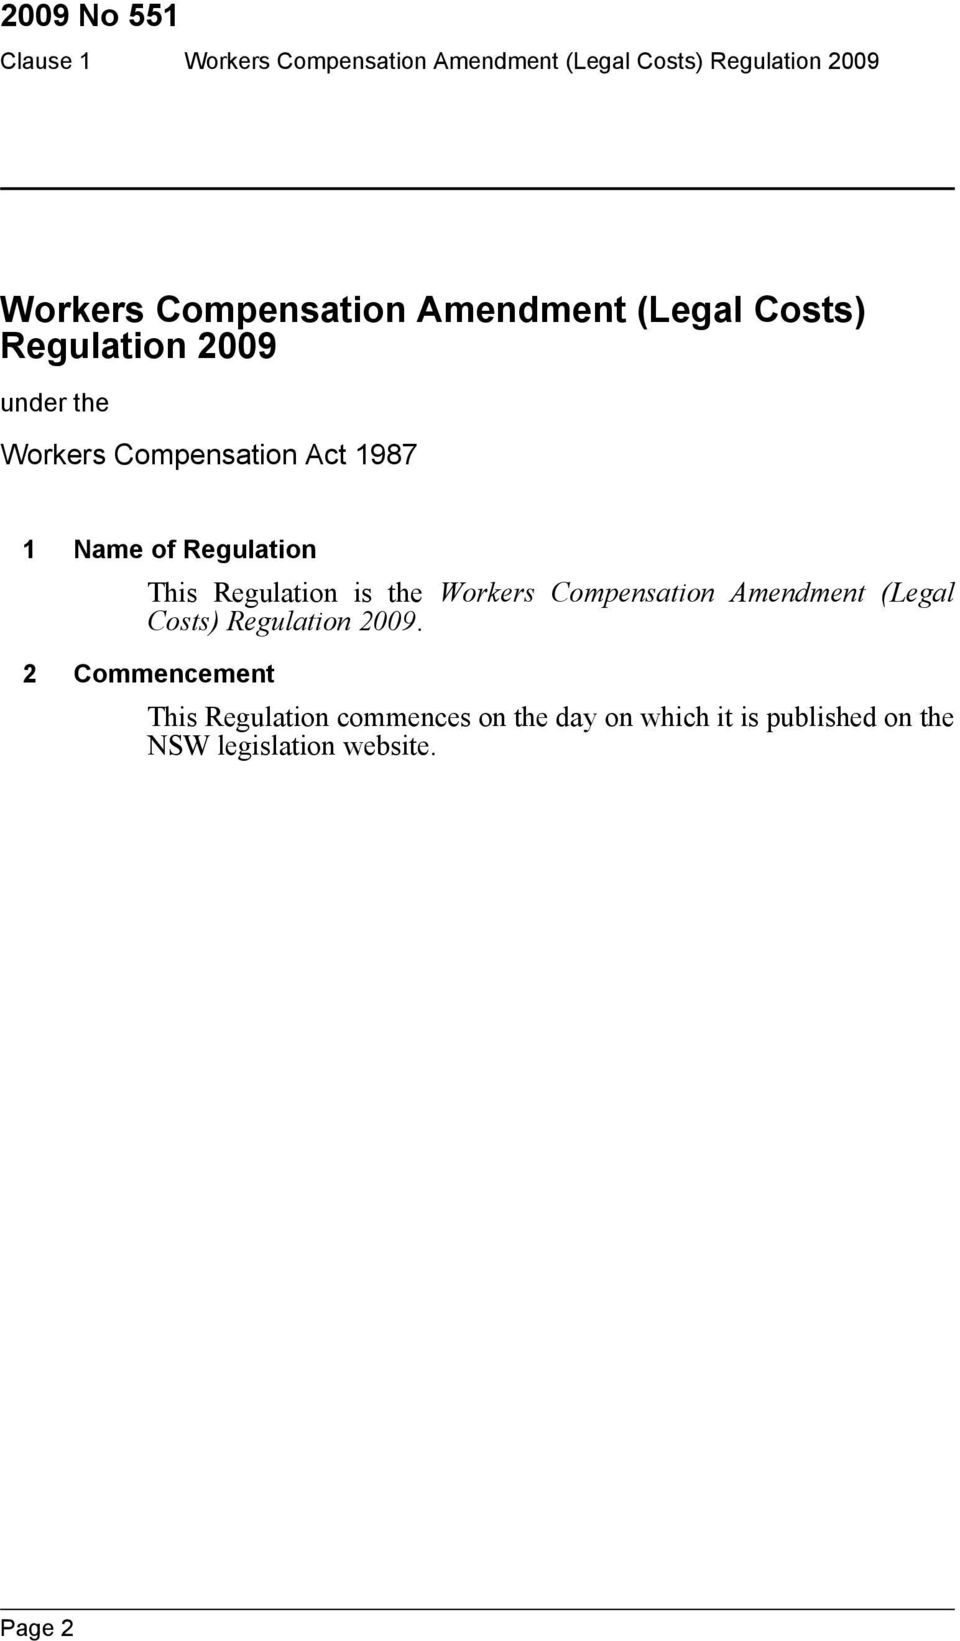 Compensation Amendment (Legal Costs) Regulation 2009.